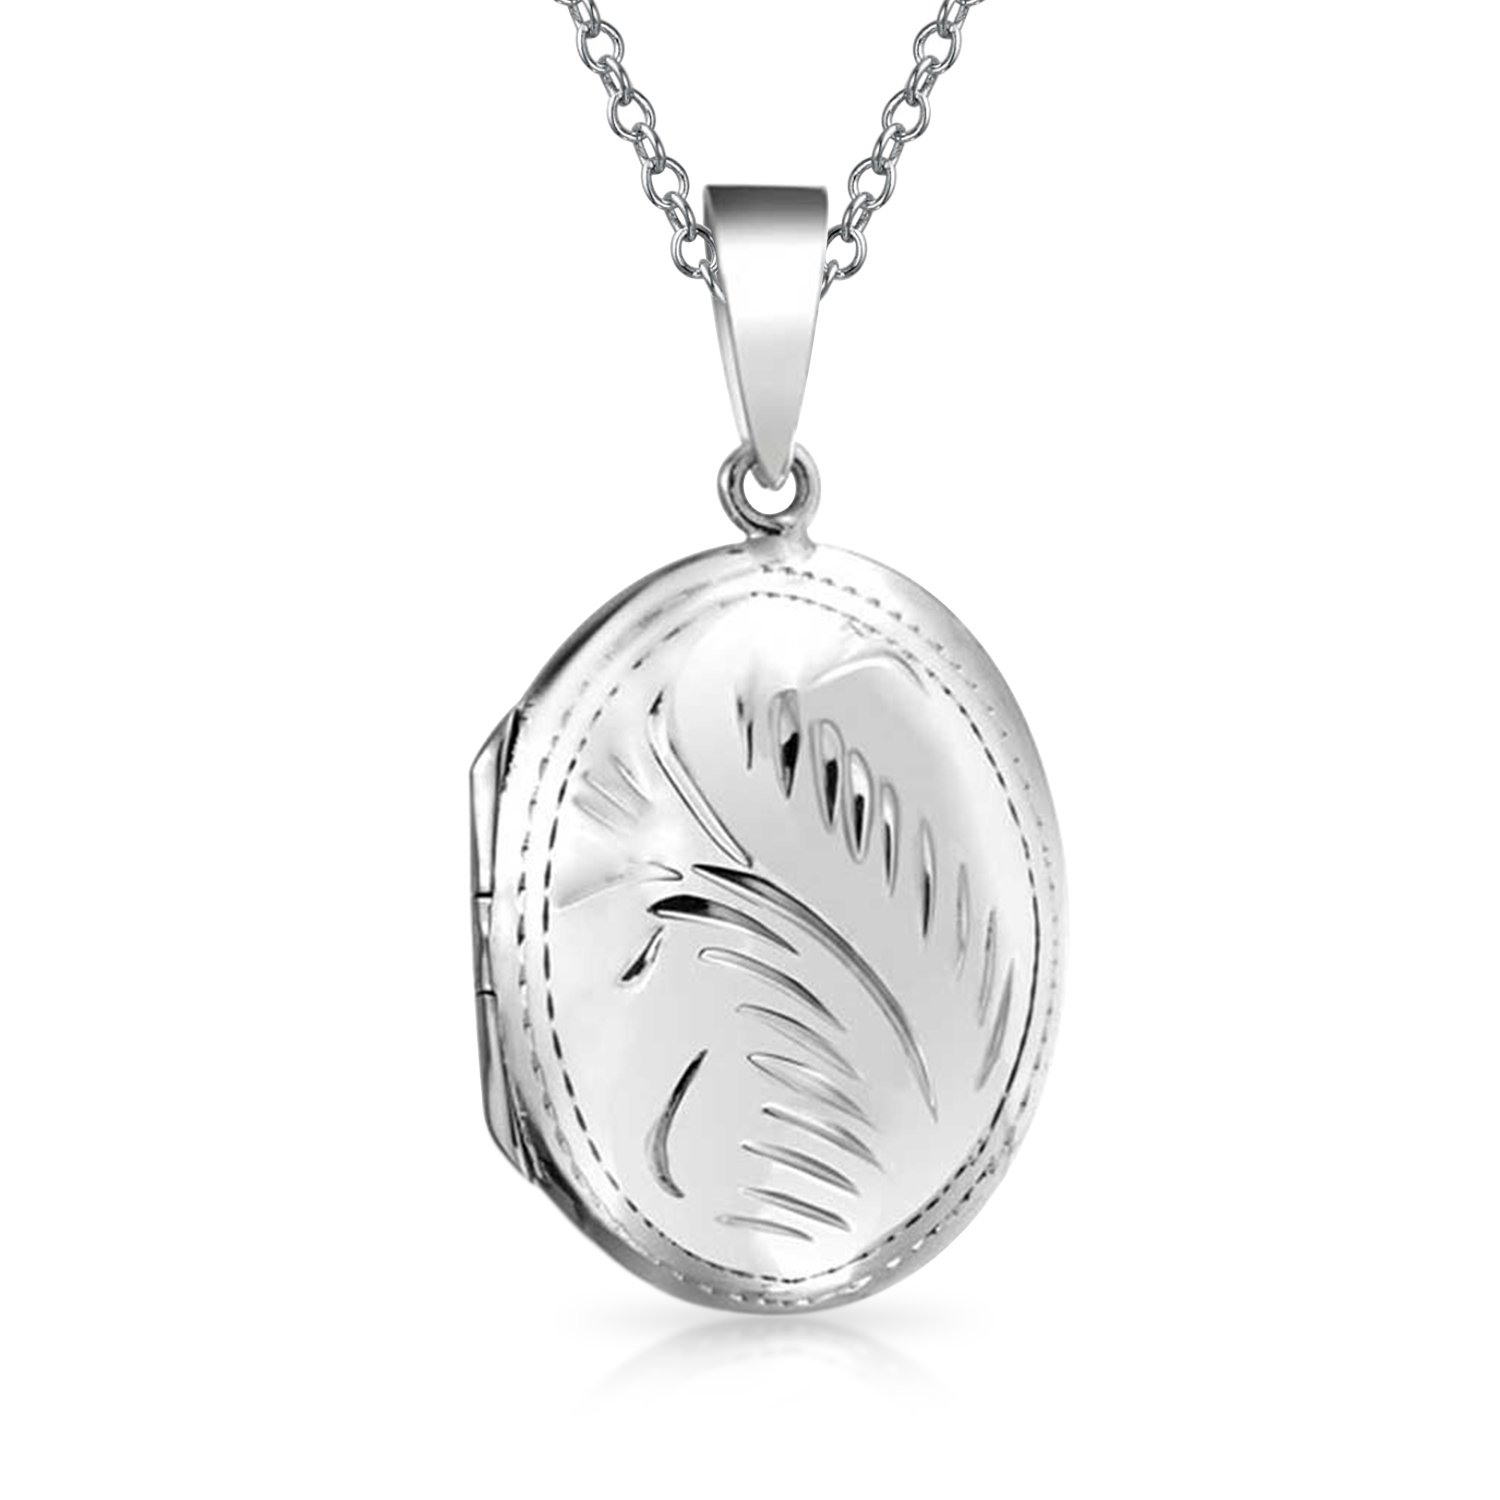 Etched Oval Polished Locket Pendant Sterling Silver Necklace 18 Inches